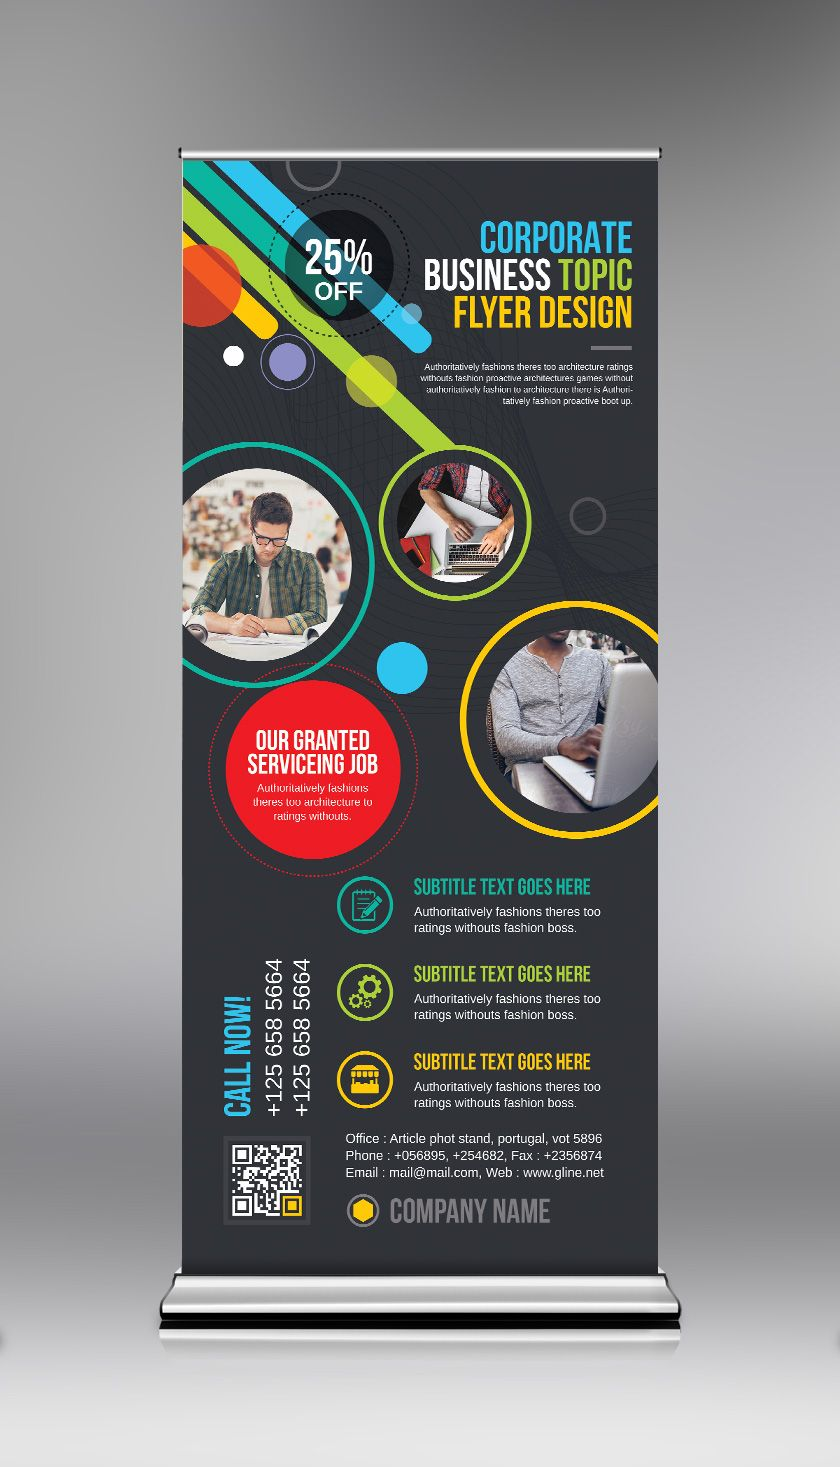 Psd Vibrant Roll Up Banner Template Graphic Templates Banner Template Pull Up Banner Design Banner Design Inspiration